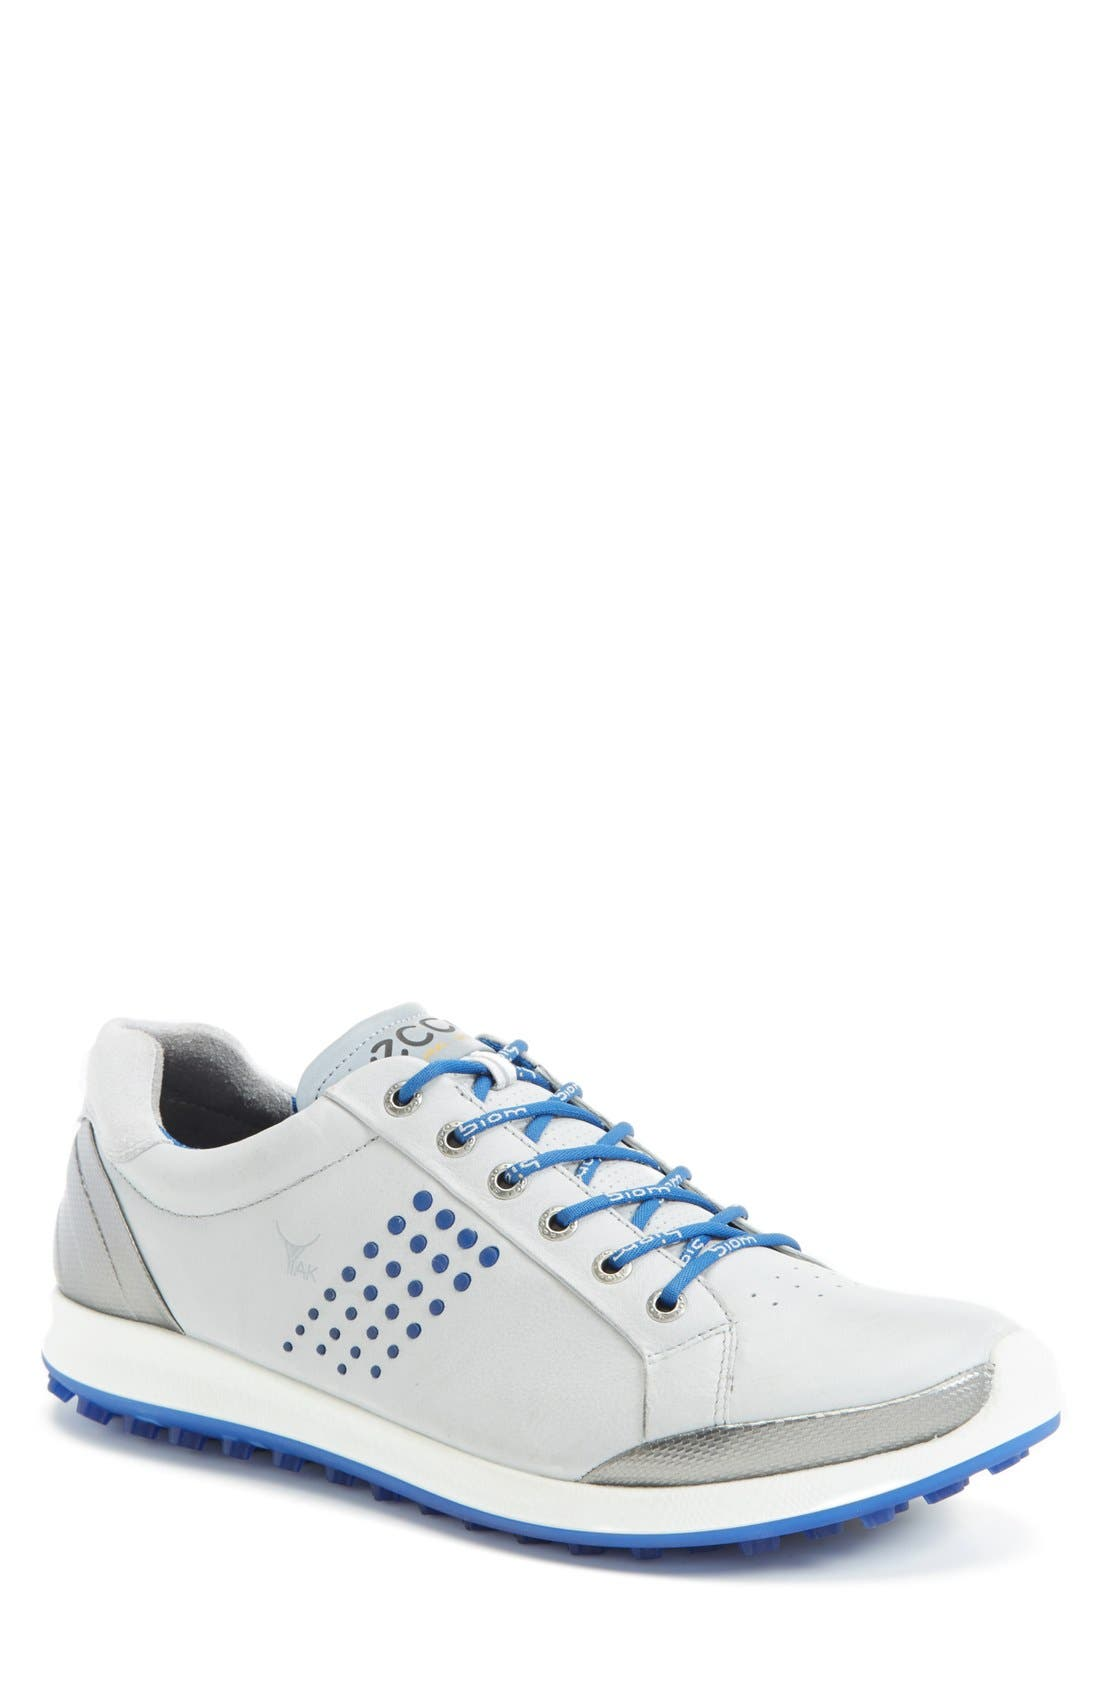 BIOM Hybrid 2 Golf Shoe,                         Main,                         color, CONCRETE/ ROYAL